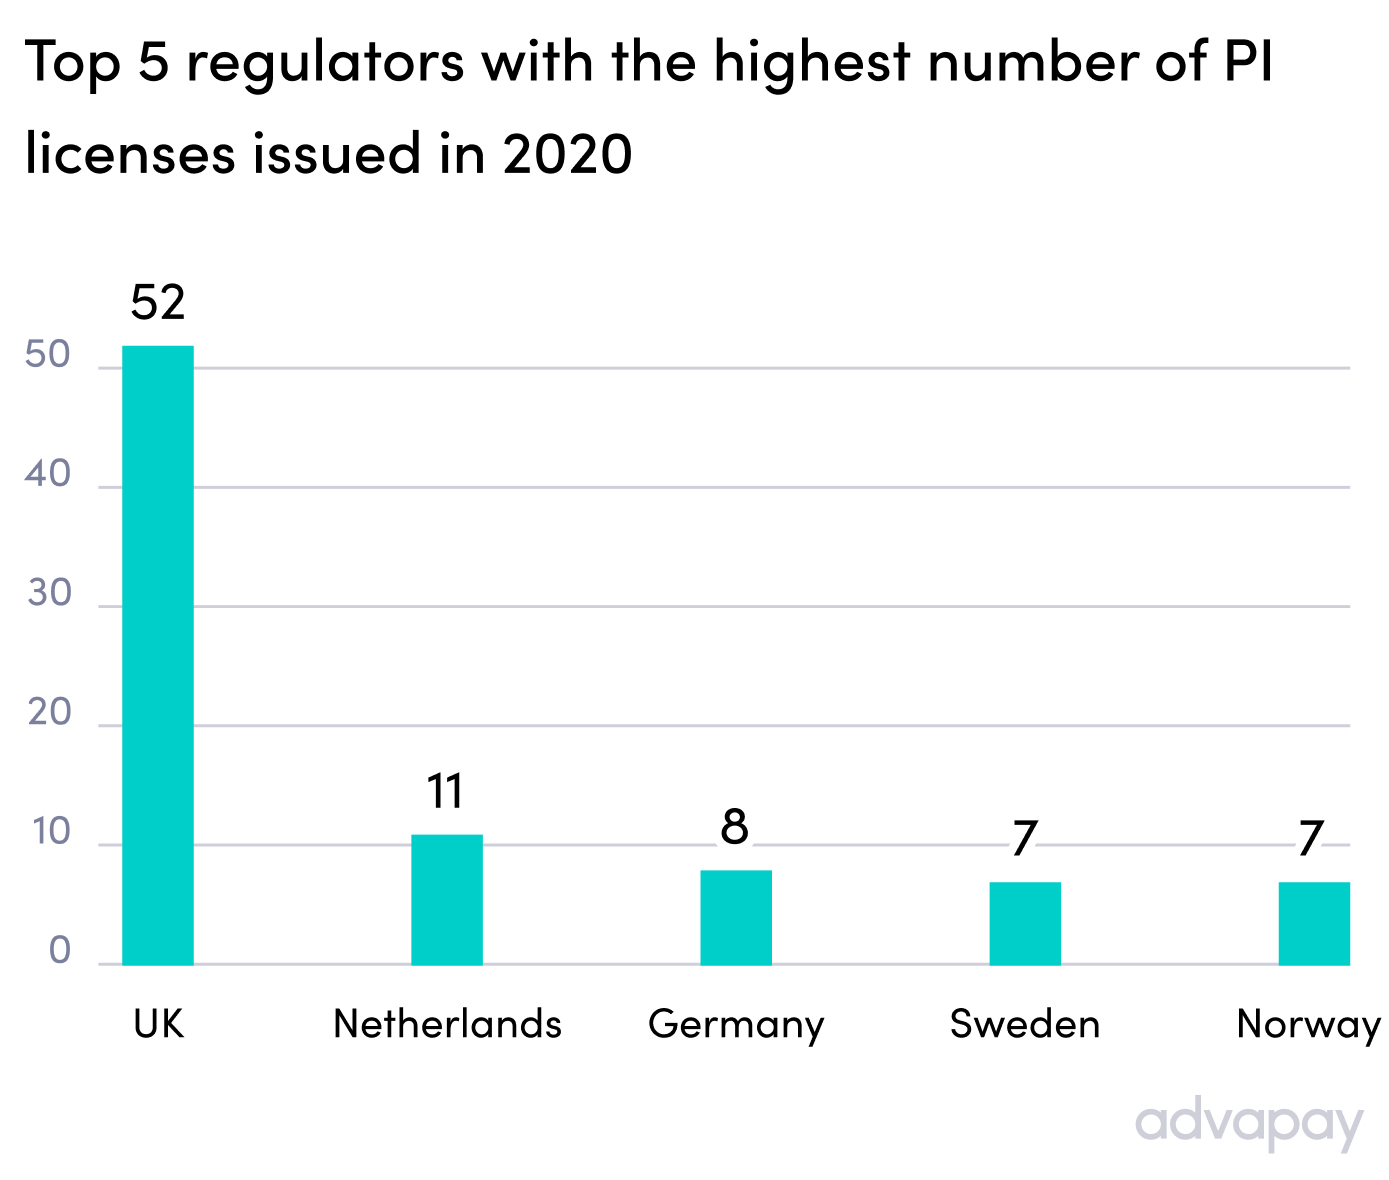 Top 5 regulators with the highest number of PI licenses issued in 2020